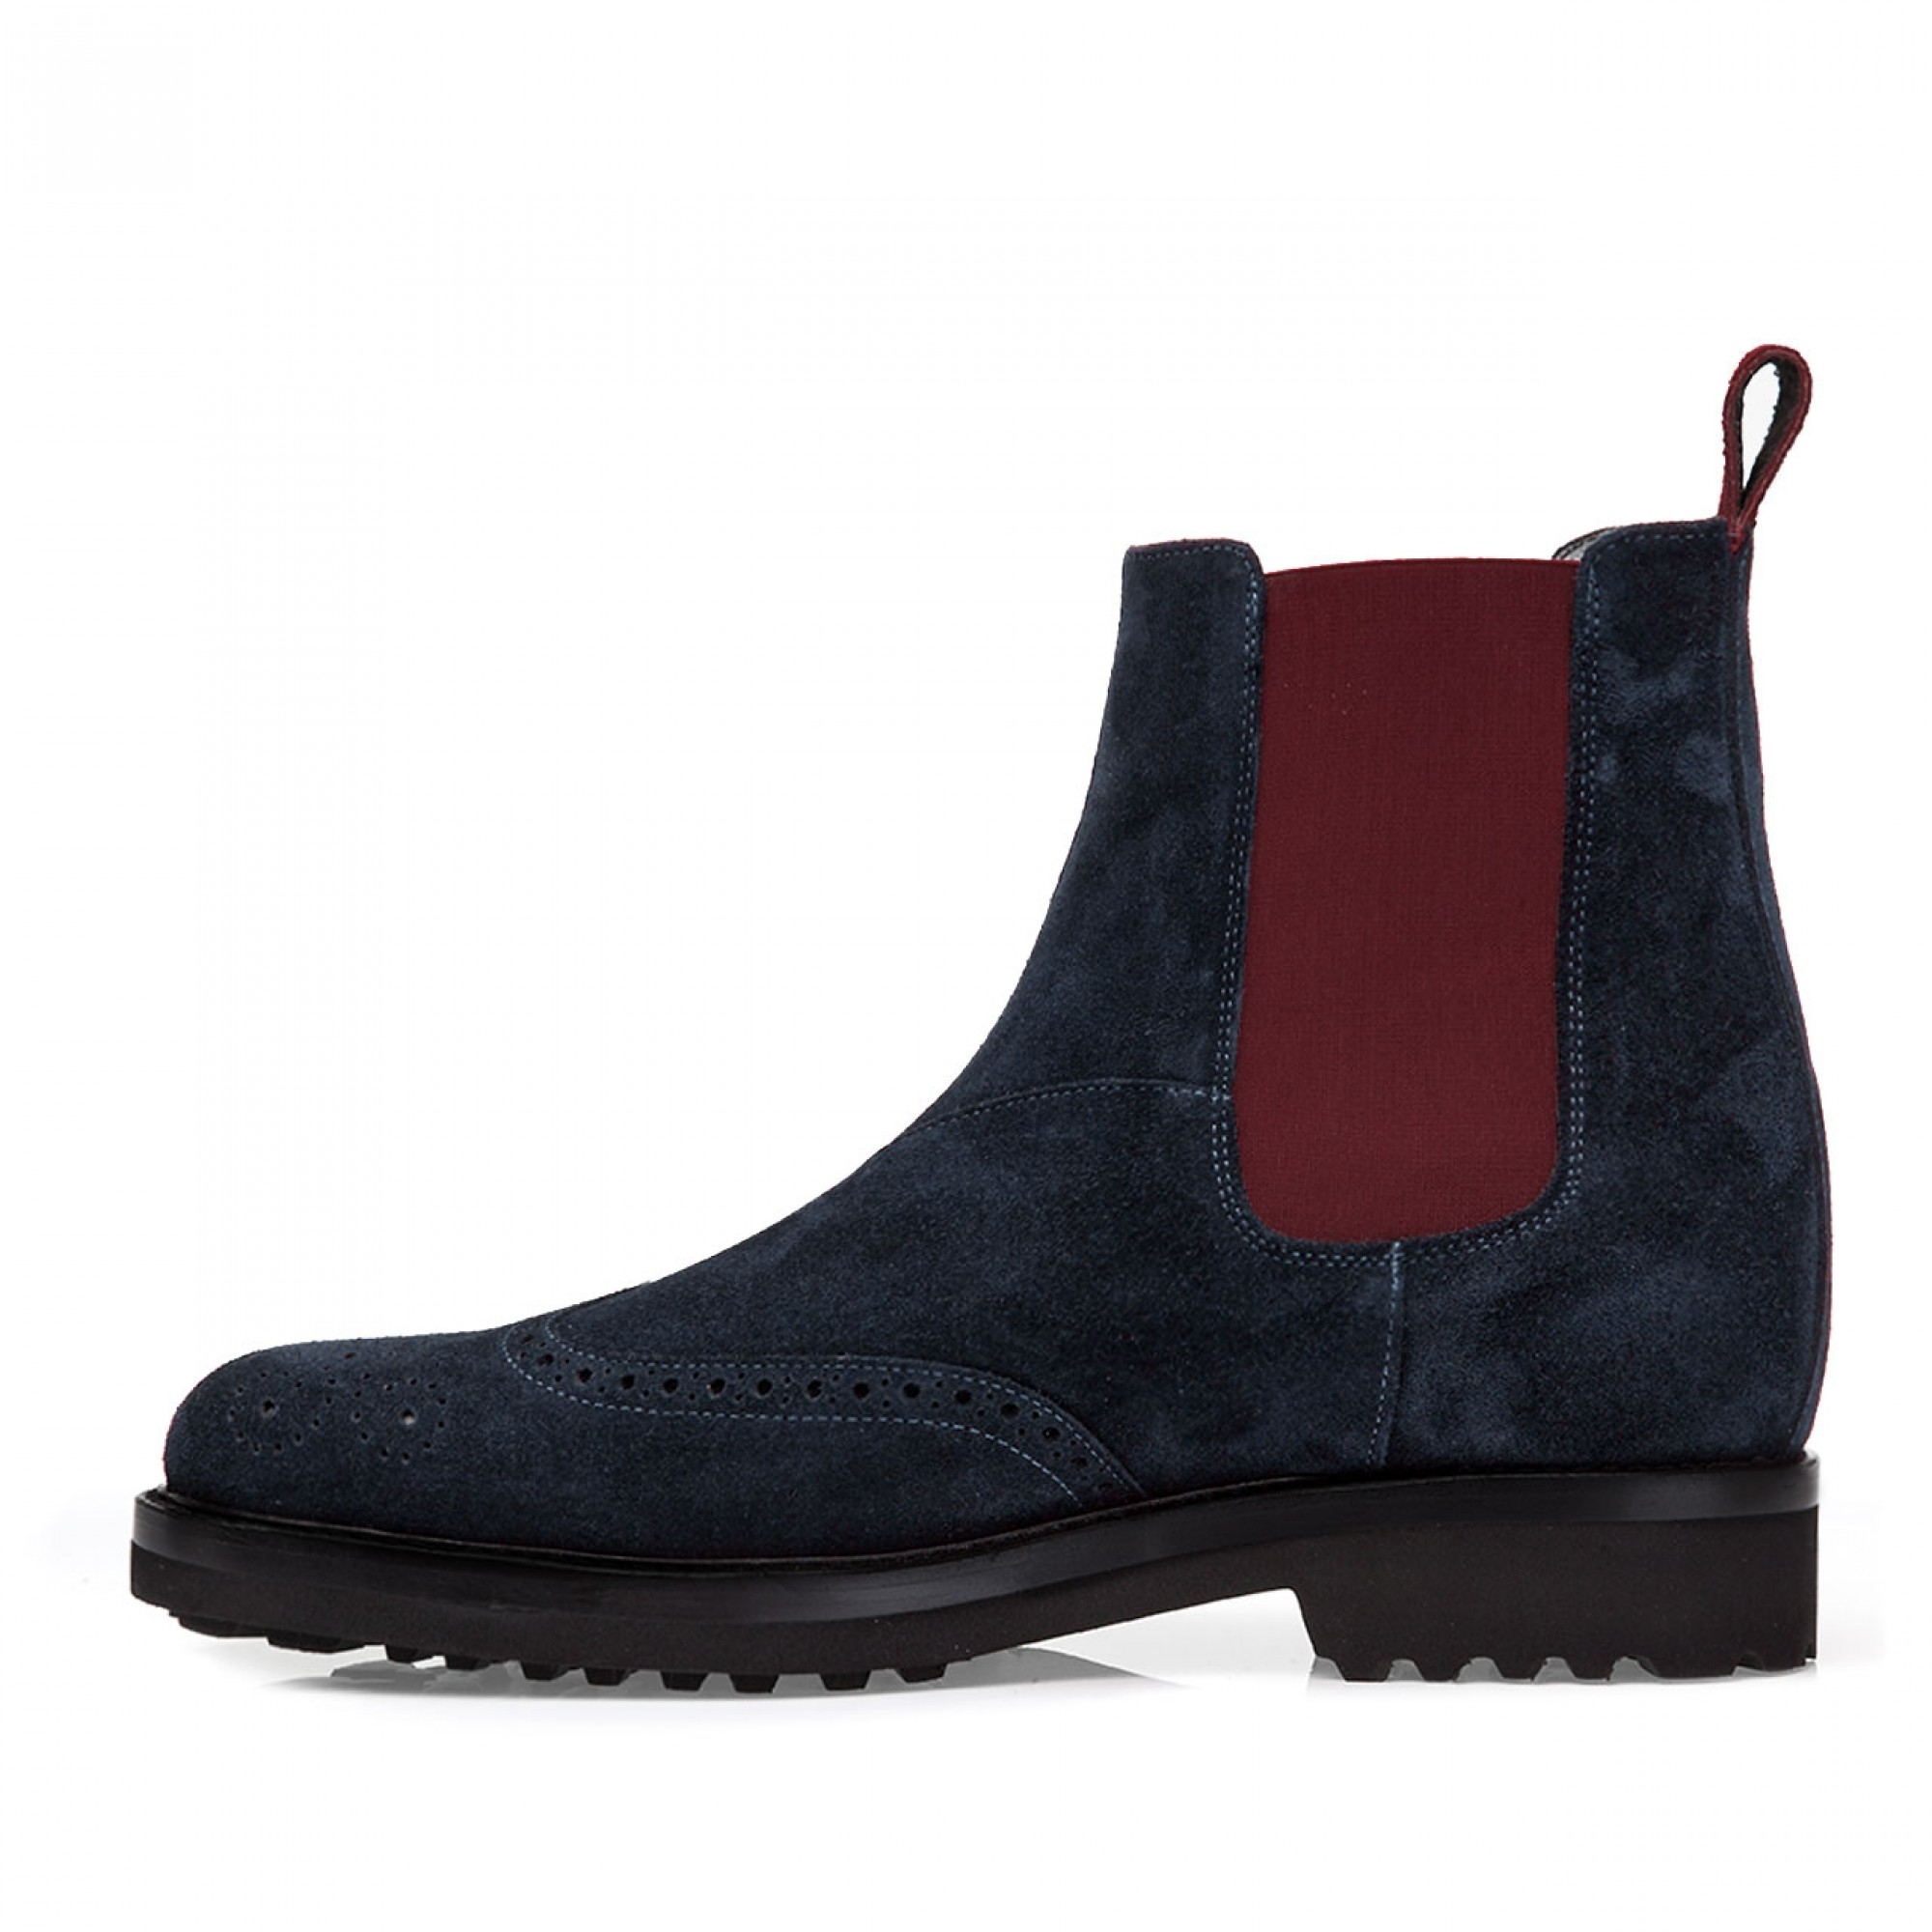 Elevator Chelsea Boots